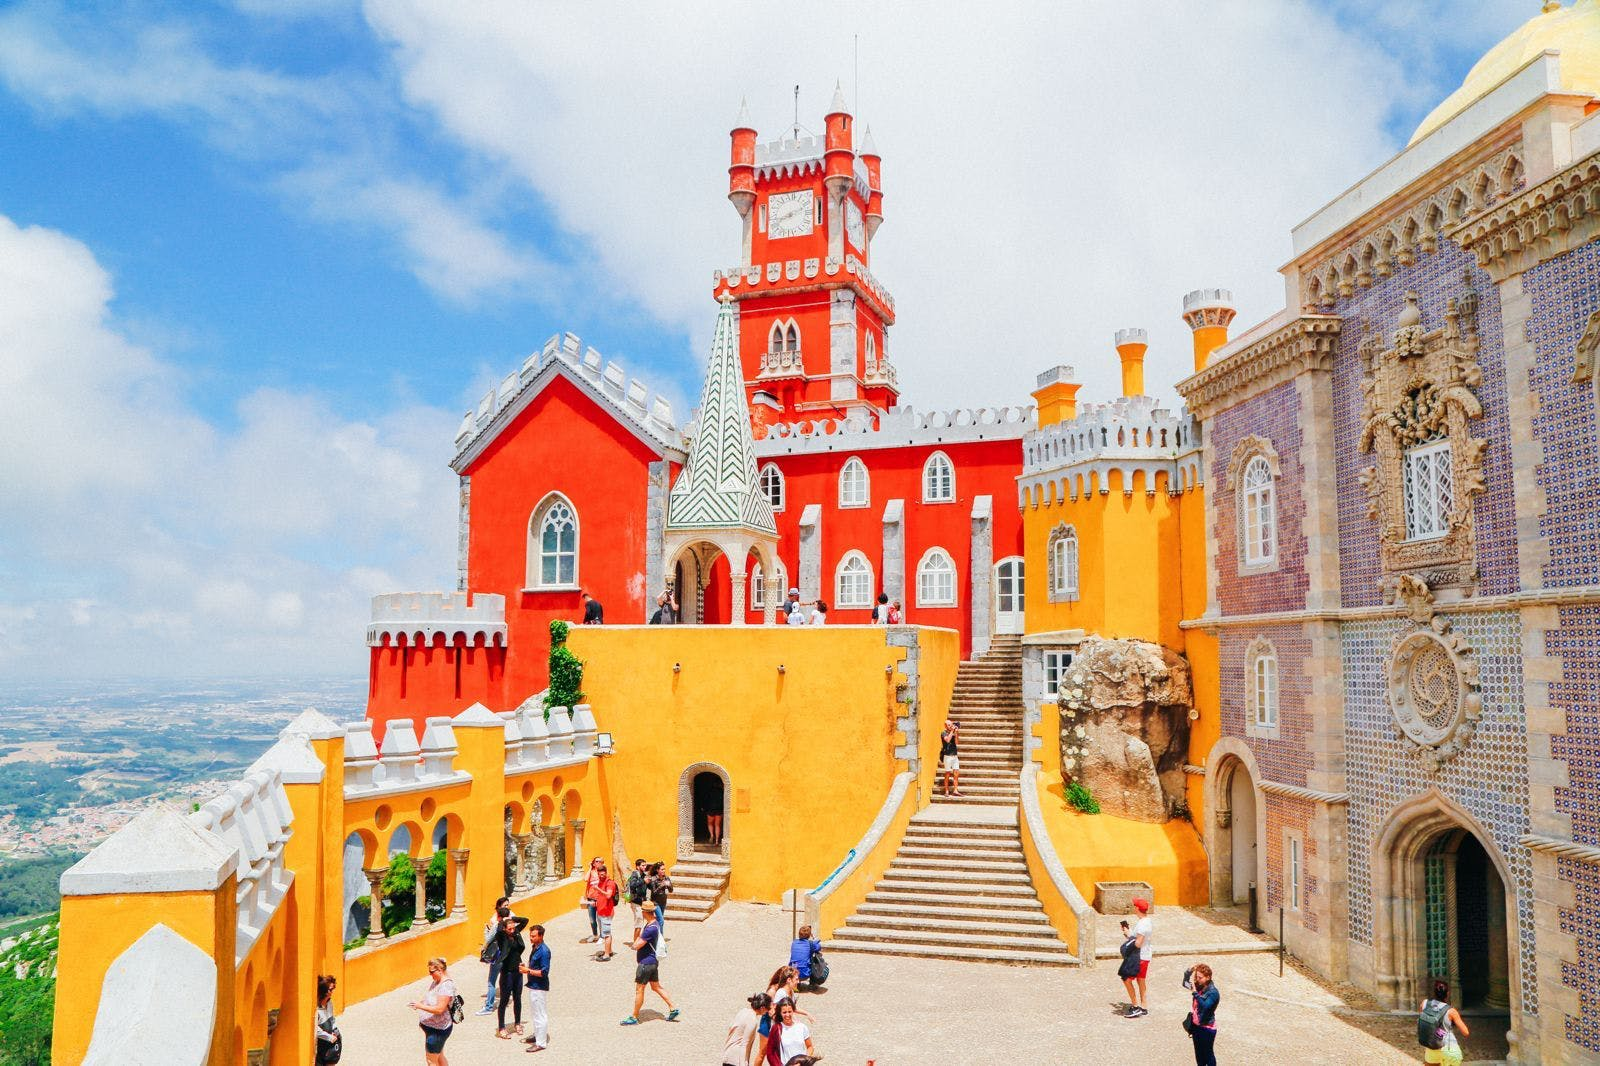 Colourful Sintra Castle during the annual Sintra Festival.